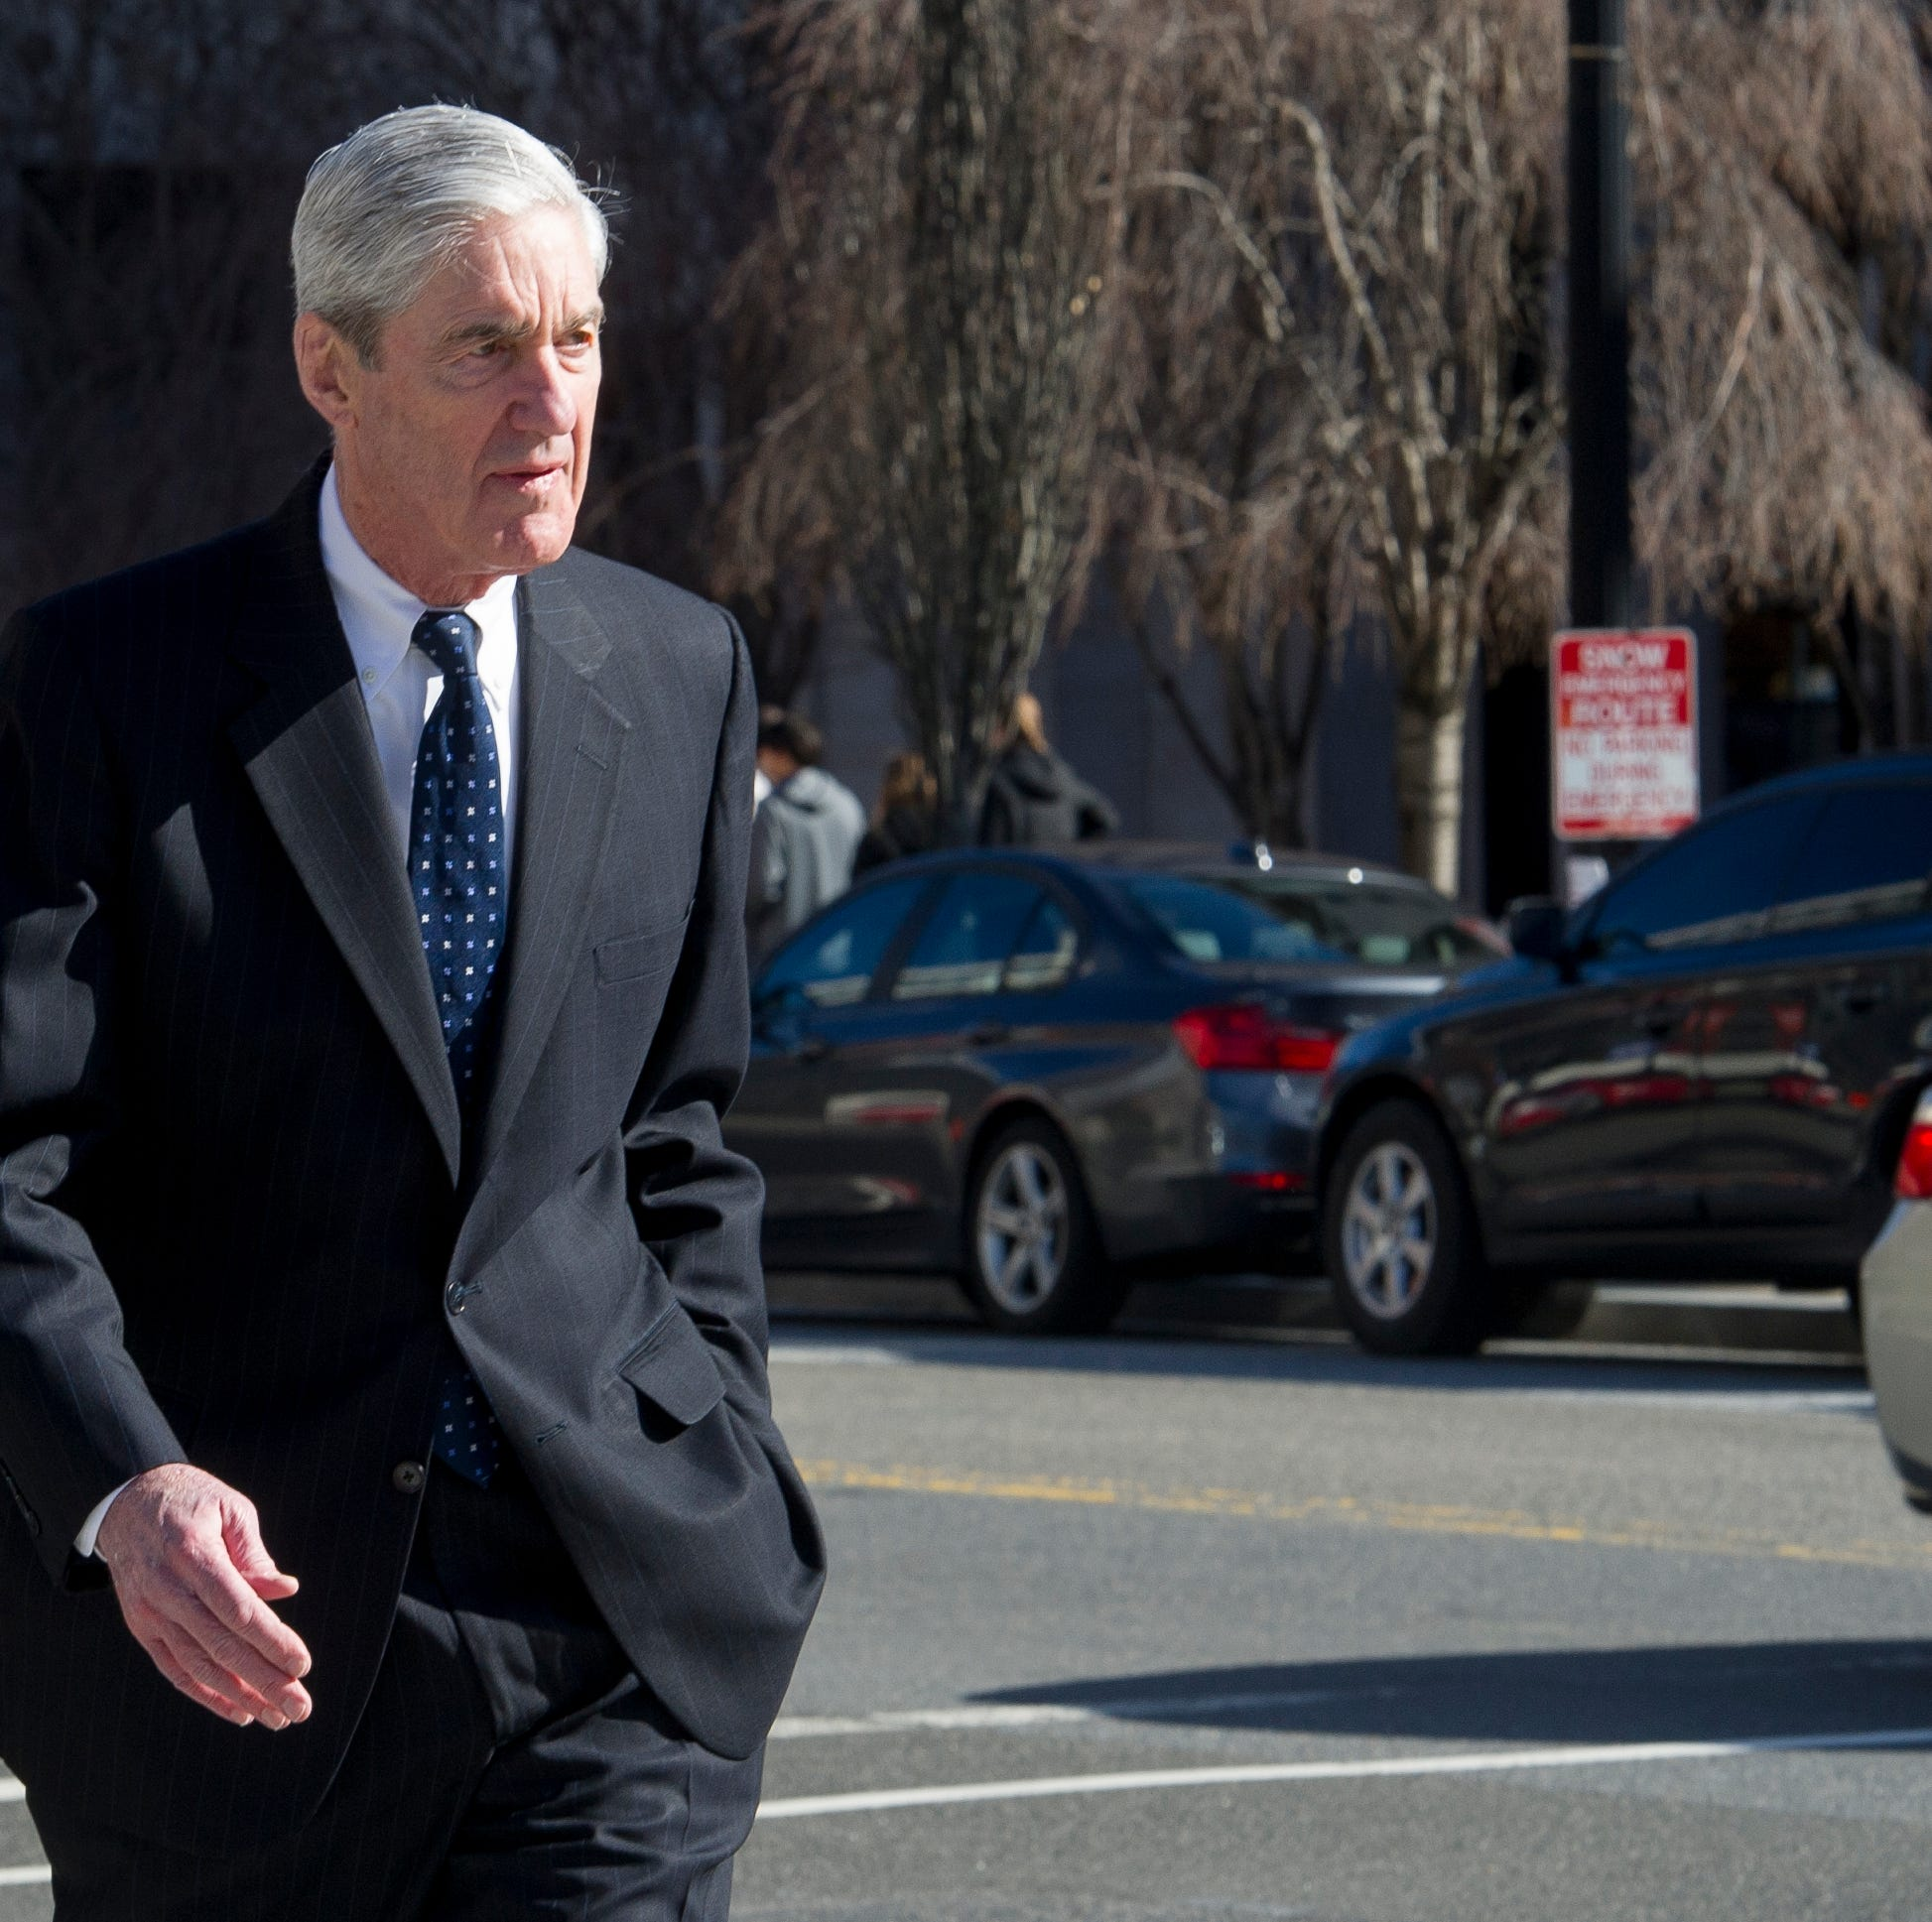 NJ politicians call for the Mueller report to publicly released